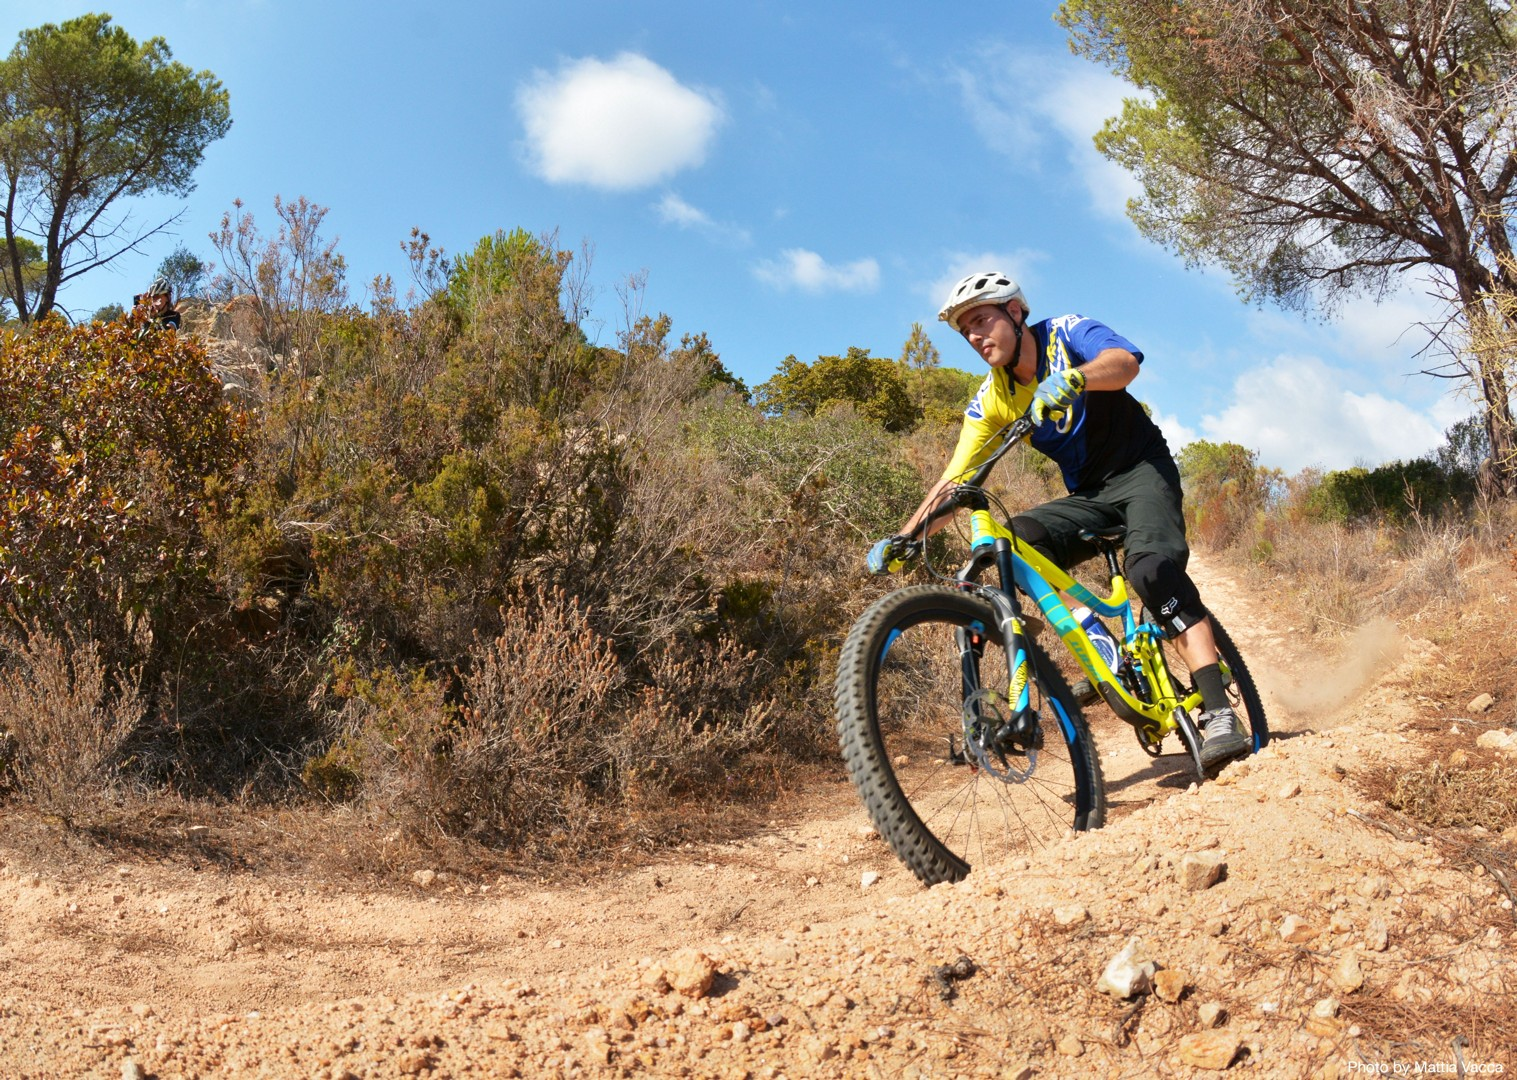 trails-sardinian-enduro-italy-guided-mountain-bike-holiday.jpg - Sardinia - Sardinian Enduro - Mountain Biking